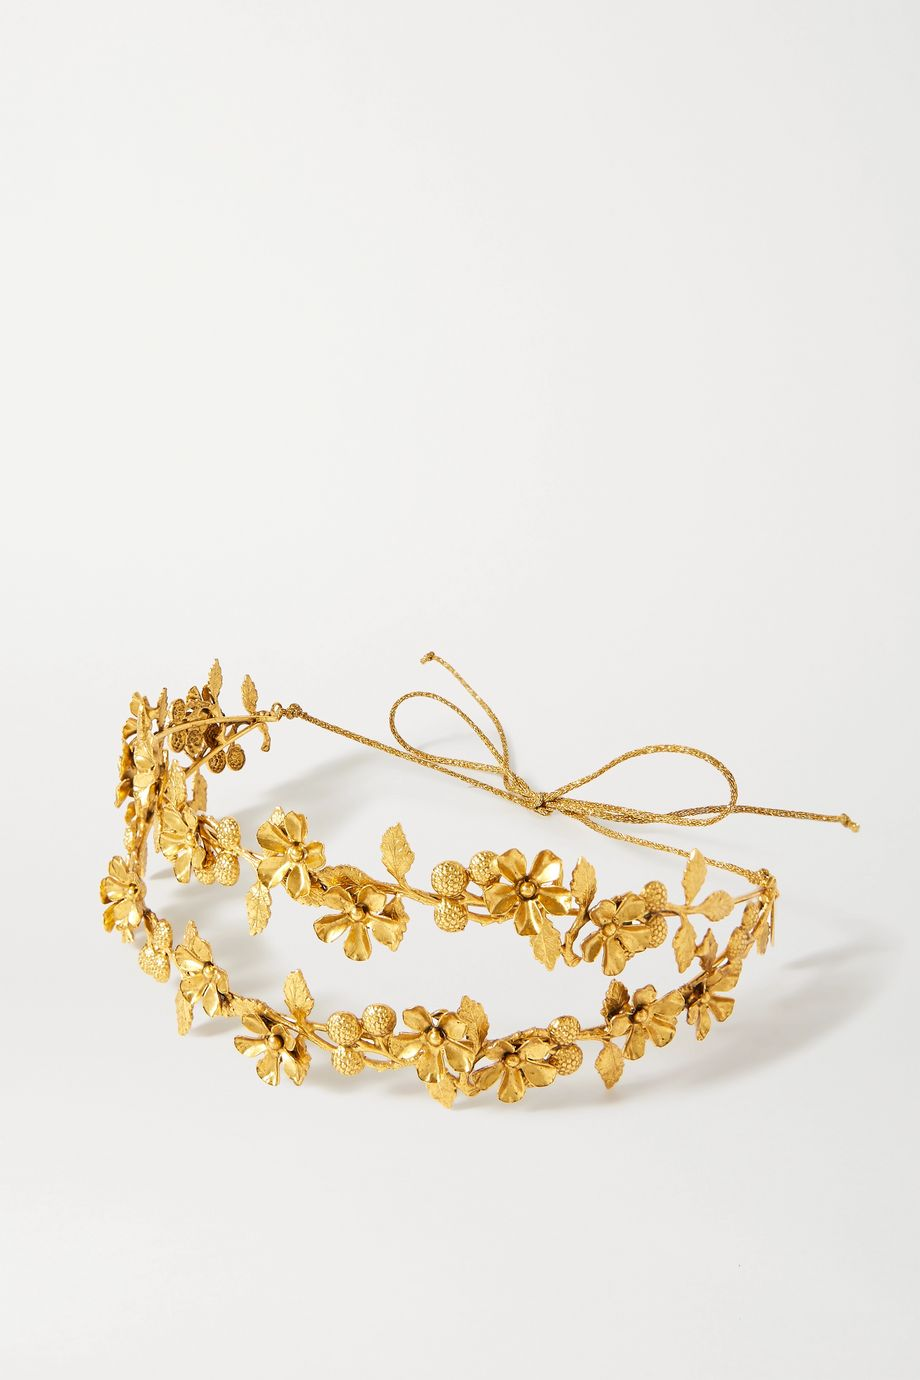 Jennifer Behr Adele gold-tone headband